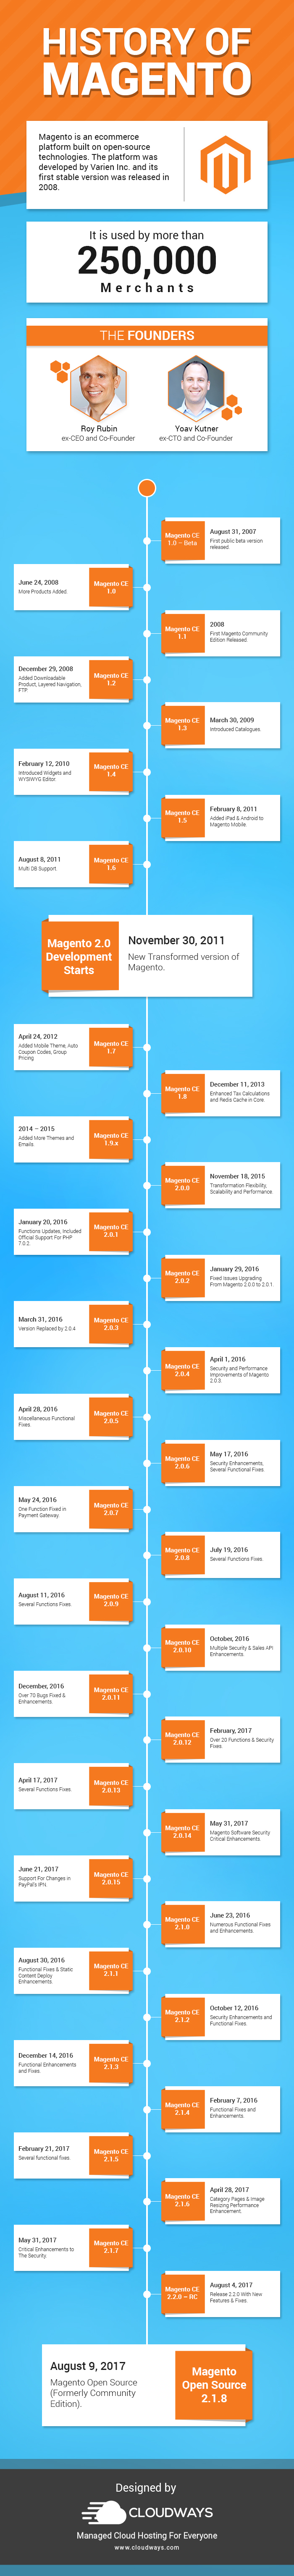 The Evolution Of Magento - Infographic